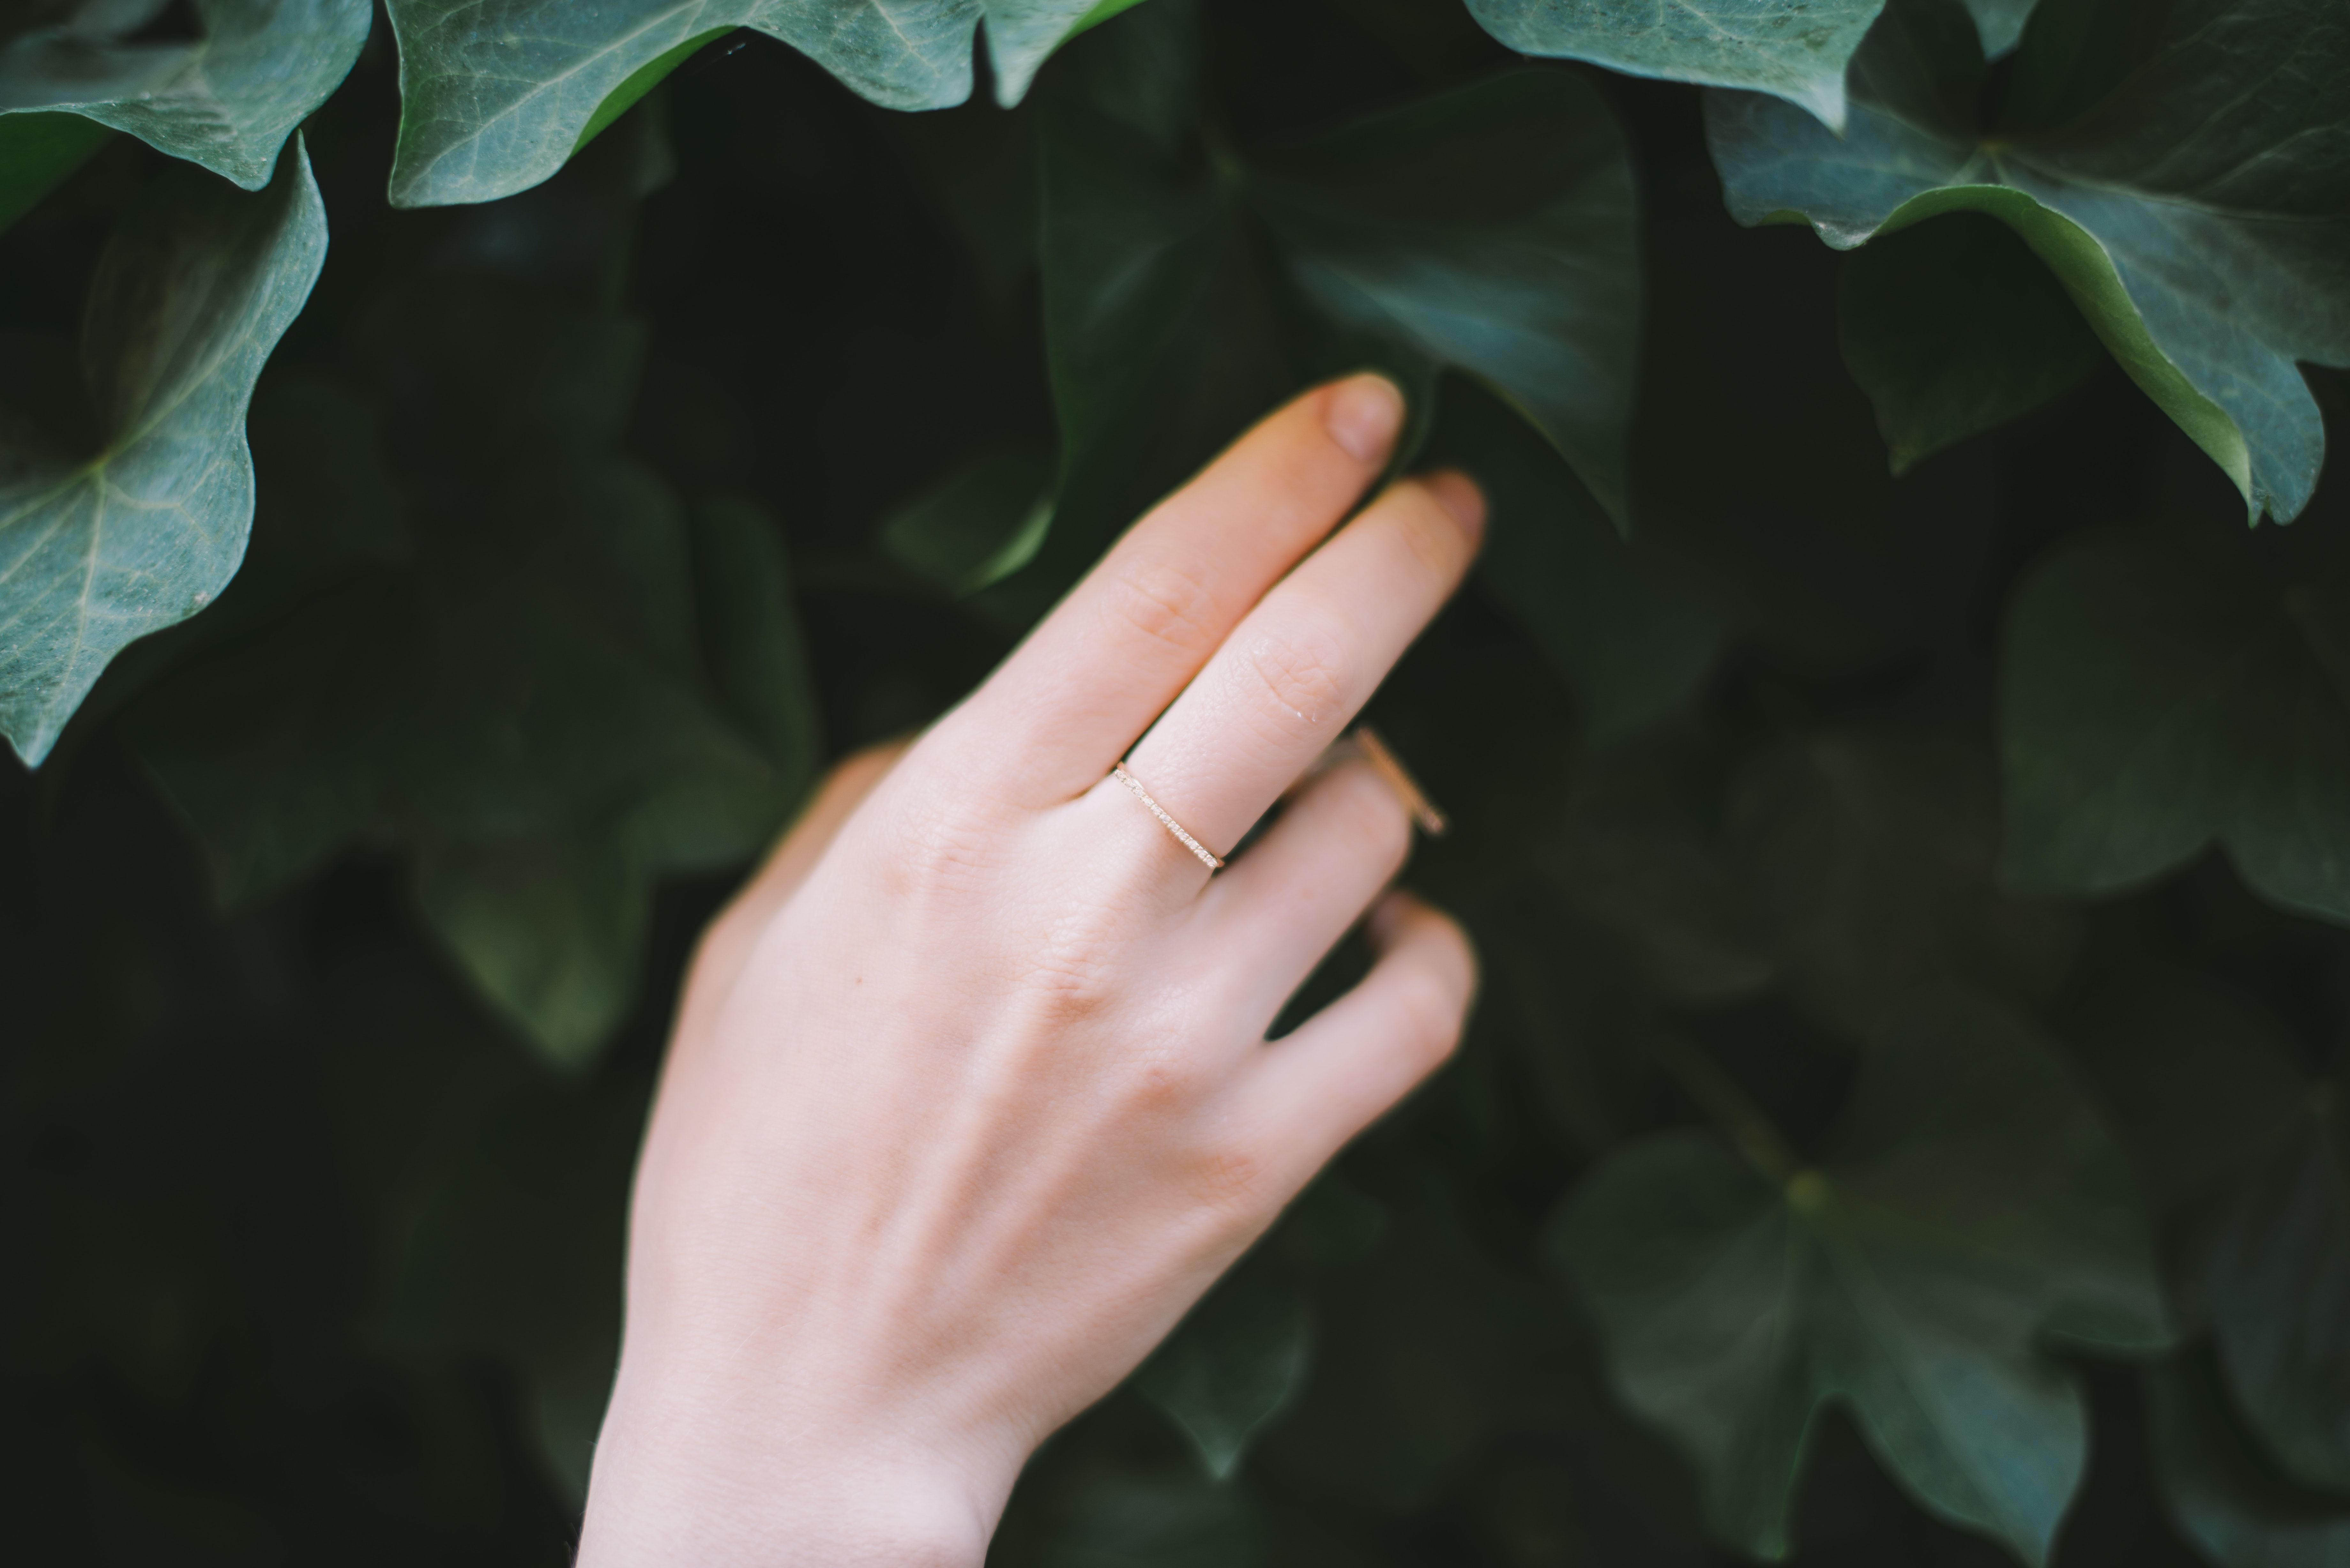 person touching green leafed plant